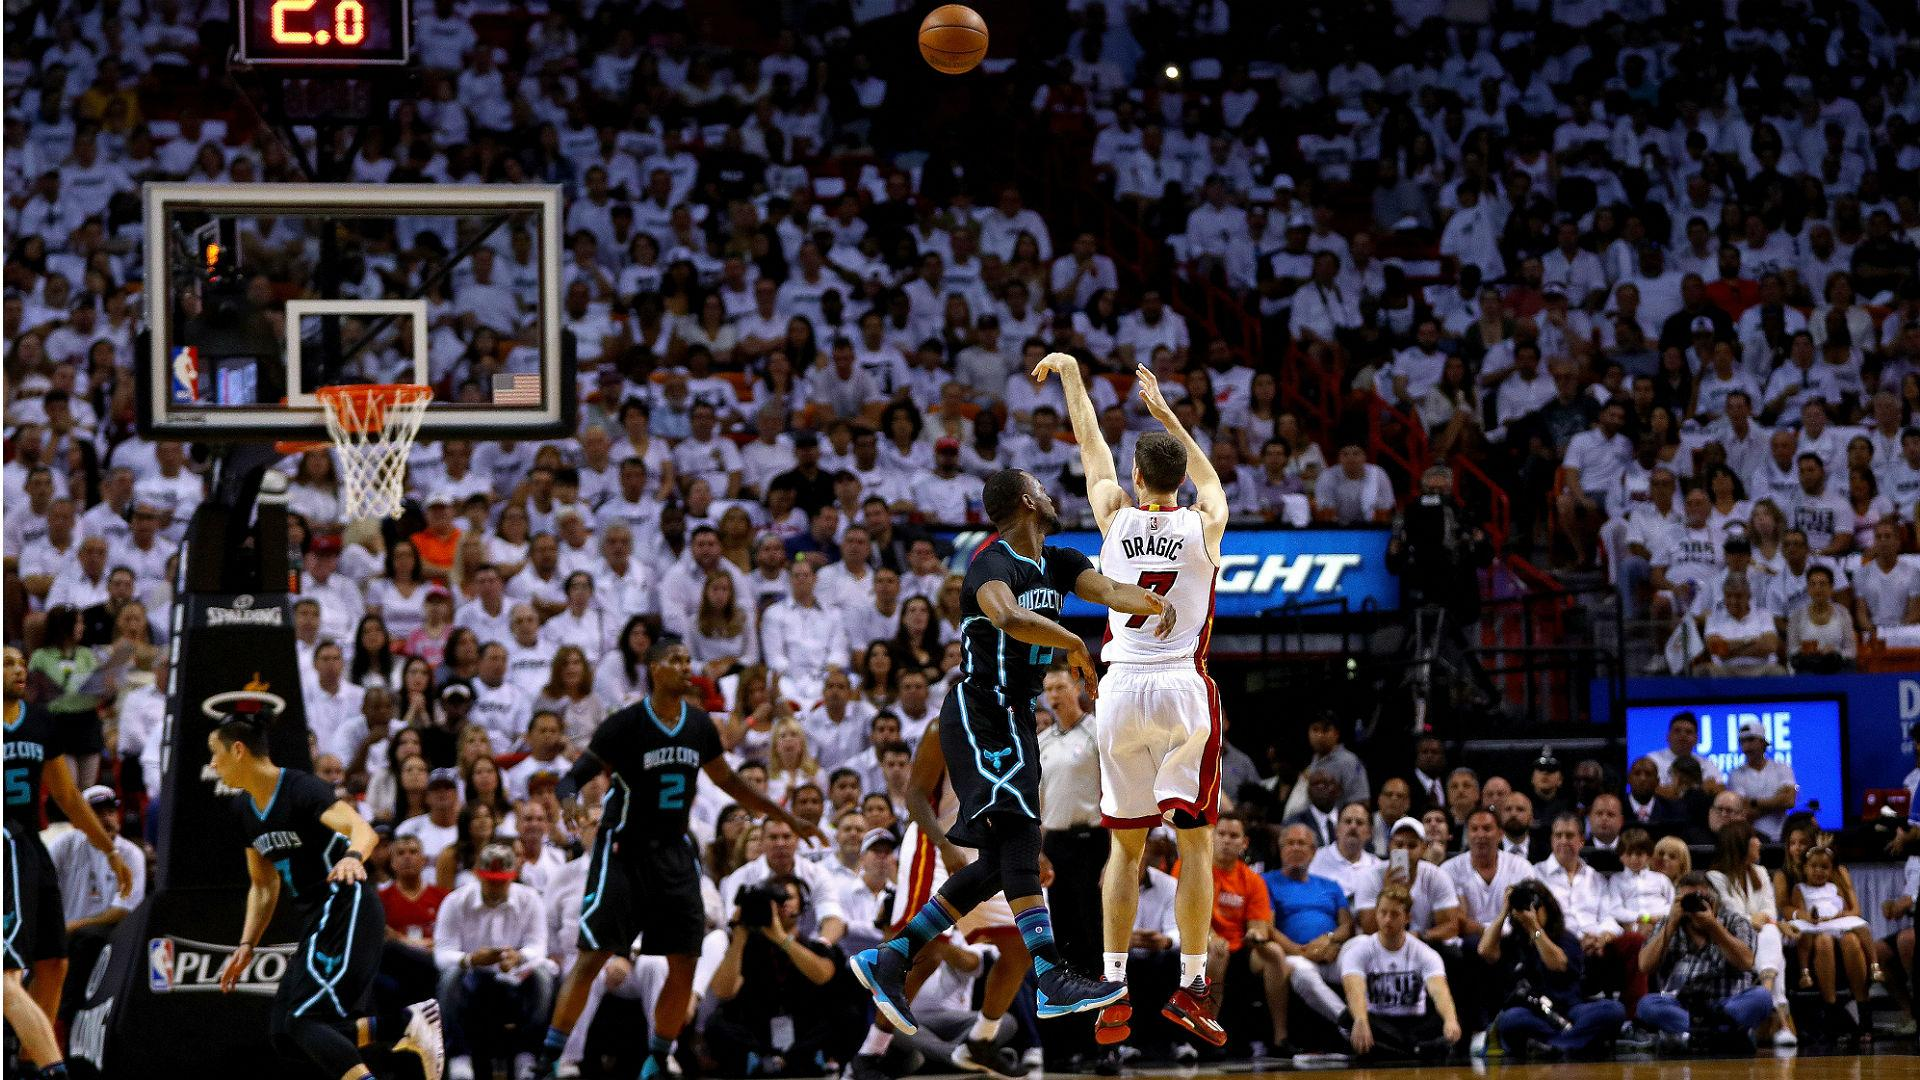 Heat advance as Goran Dragic goes wild in Game 7 blowout over